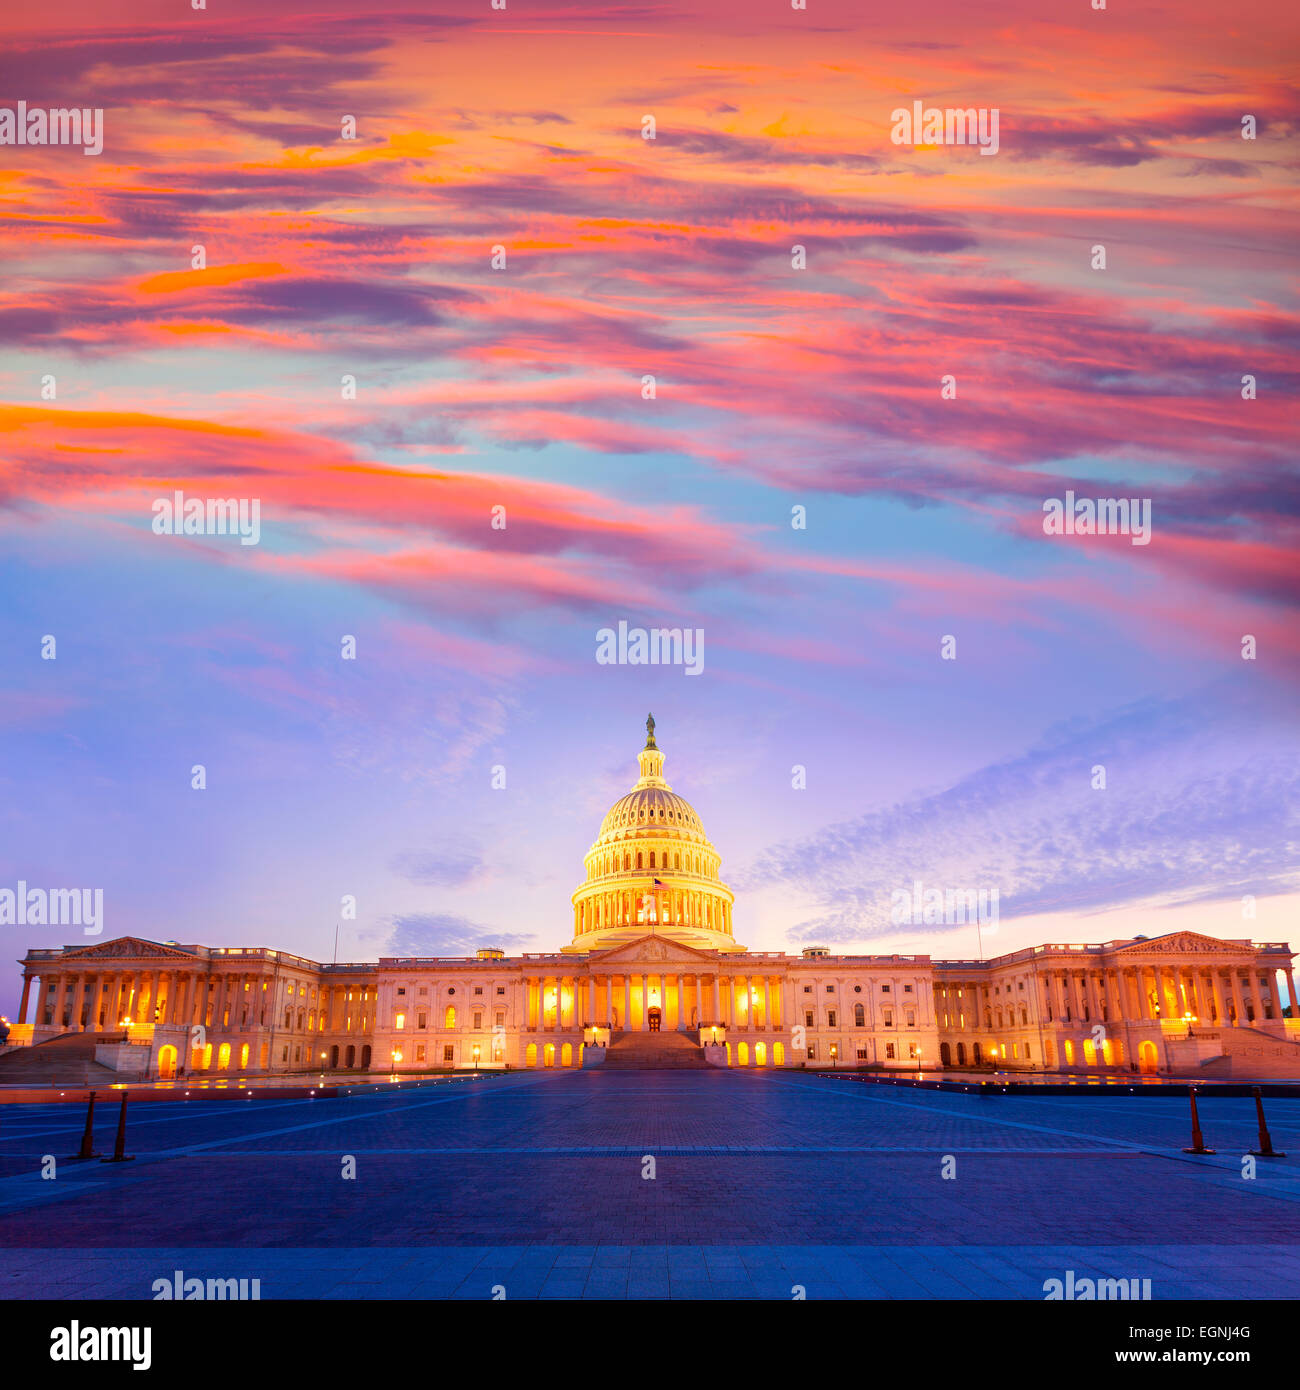 Capitol building Washington DC coucher de soleil au Congrès des Etats-Unis USA Photo Stock